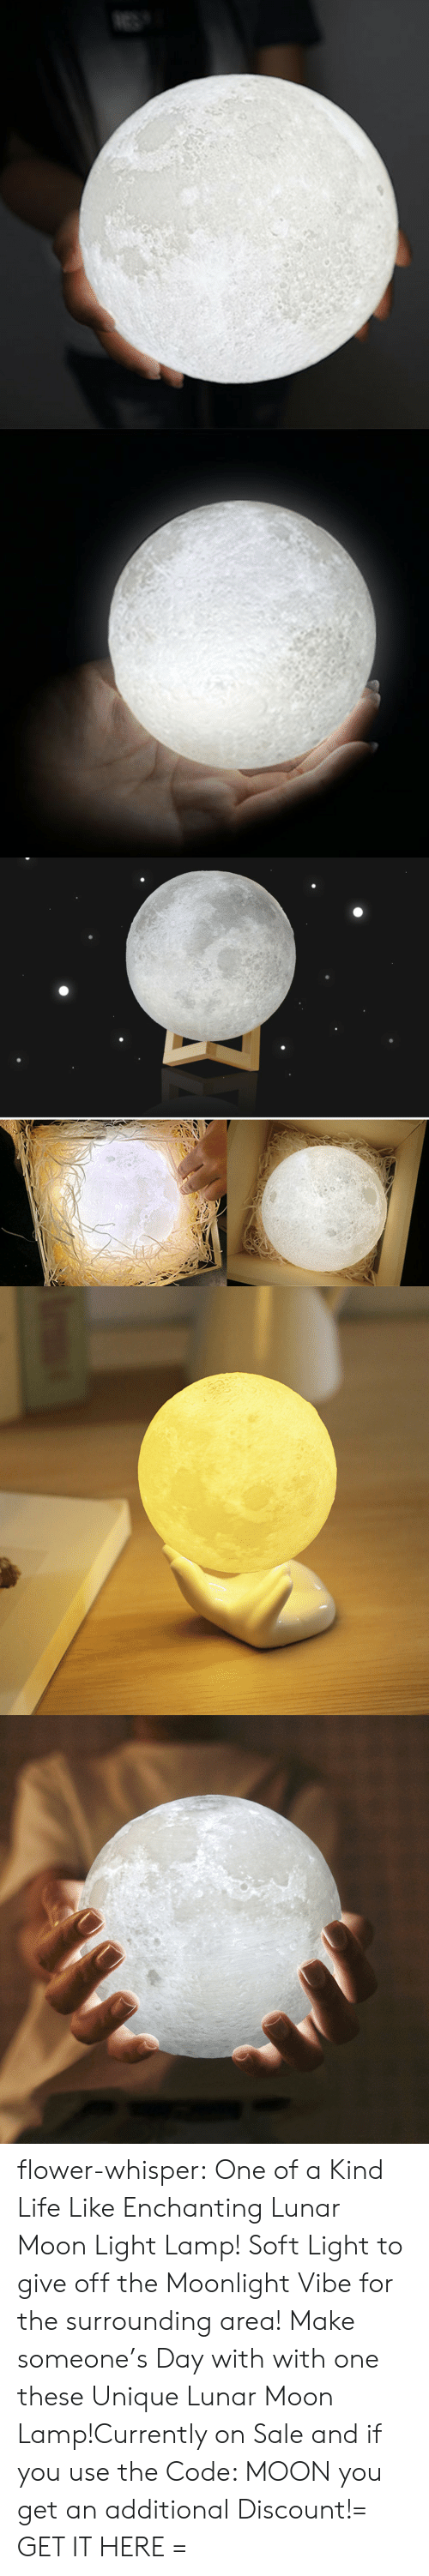 Mooning You: flower-whisper:  One of a Kind Life Like Enchanting Lunar Moon Light Lamp! Soft Light to give off the Moonlight Vibe for the surrounding area! Make someone's Day with with one these Unique Lunar Moon Lamp!Currently on Sale and if you use the Code: MOON you get an additional Discount!= GET IT HERE =